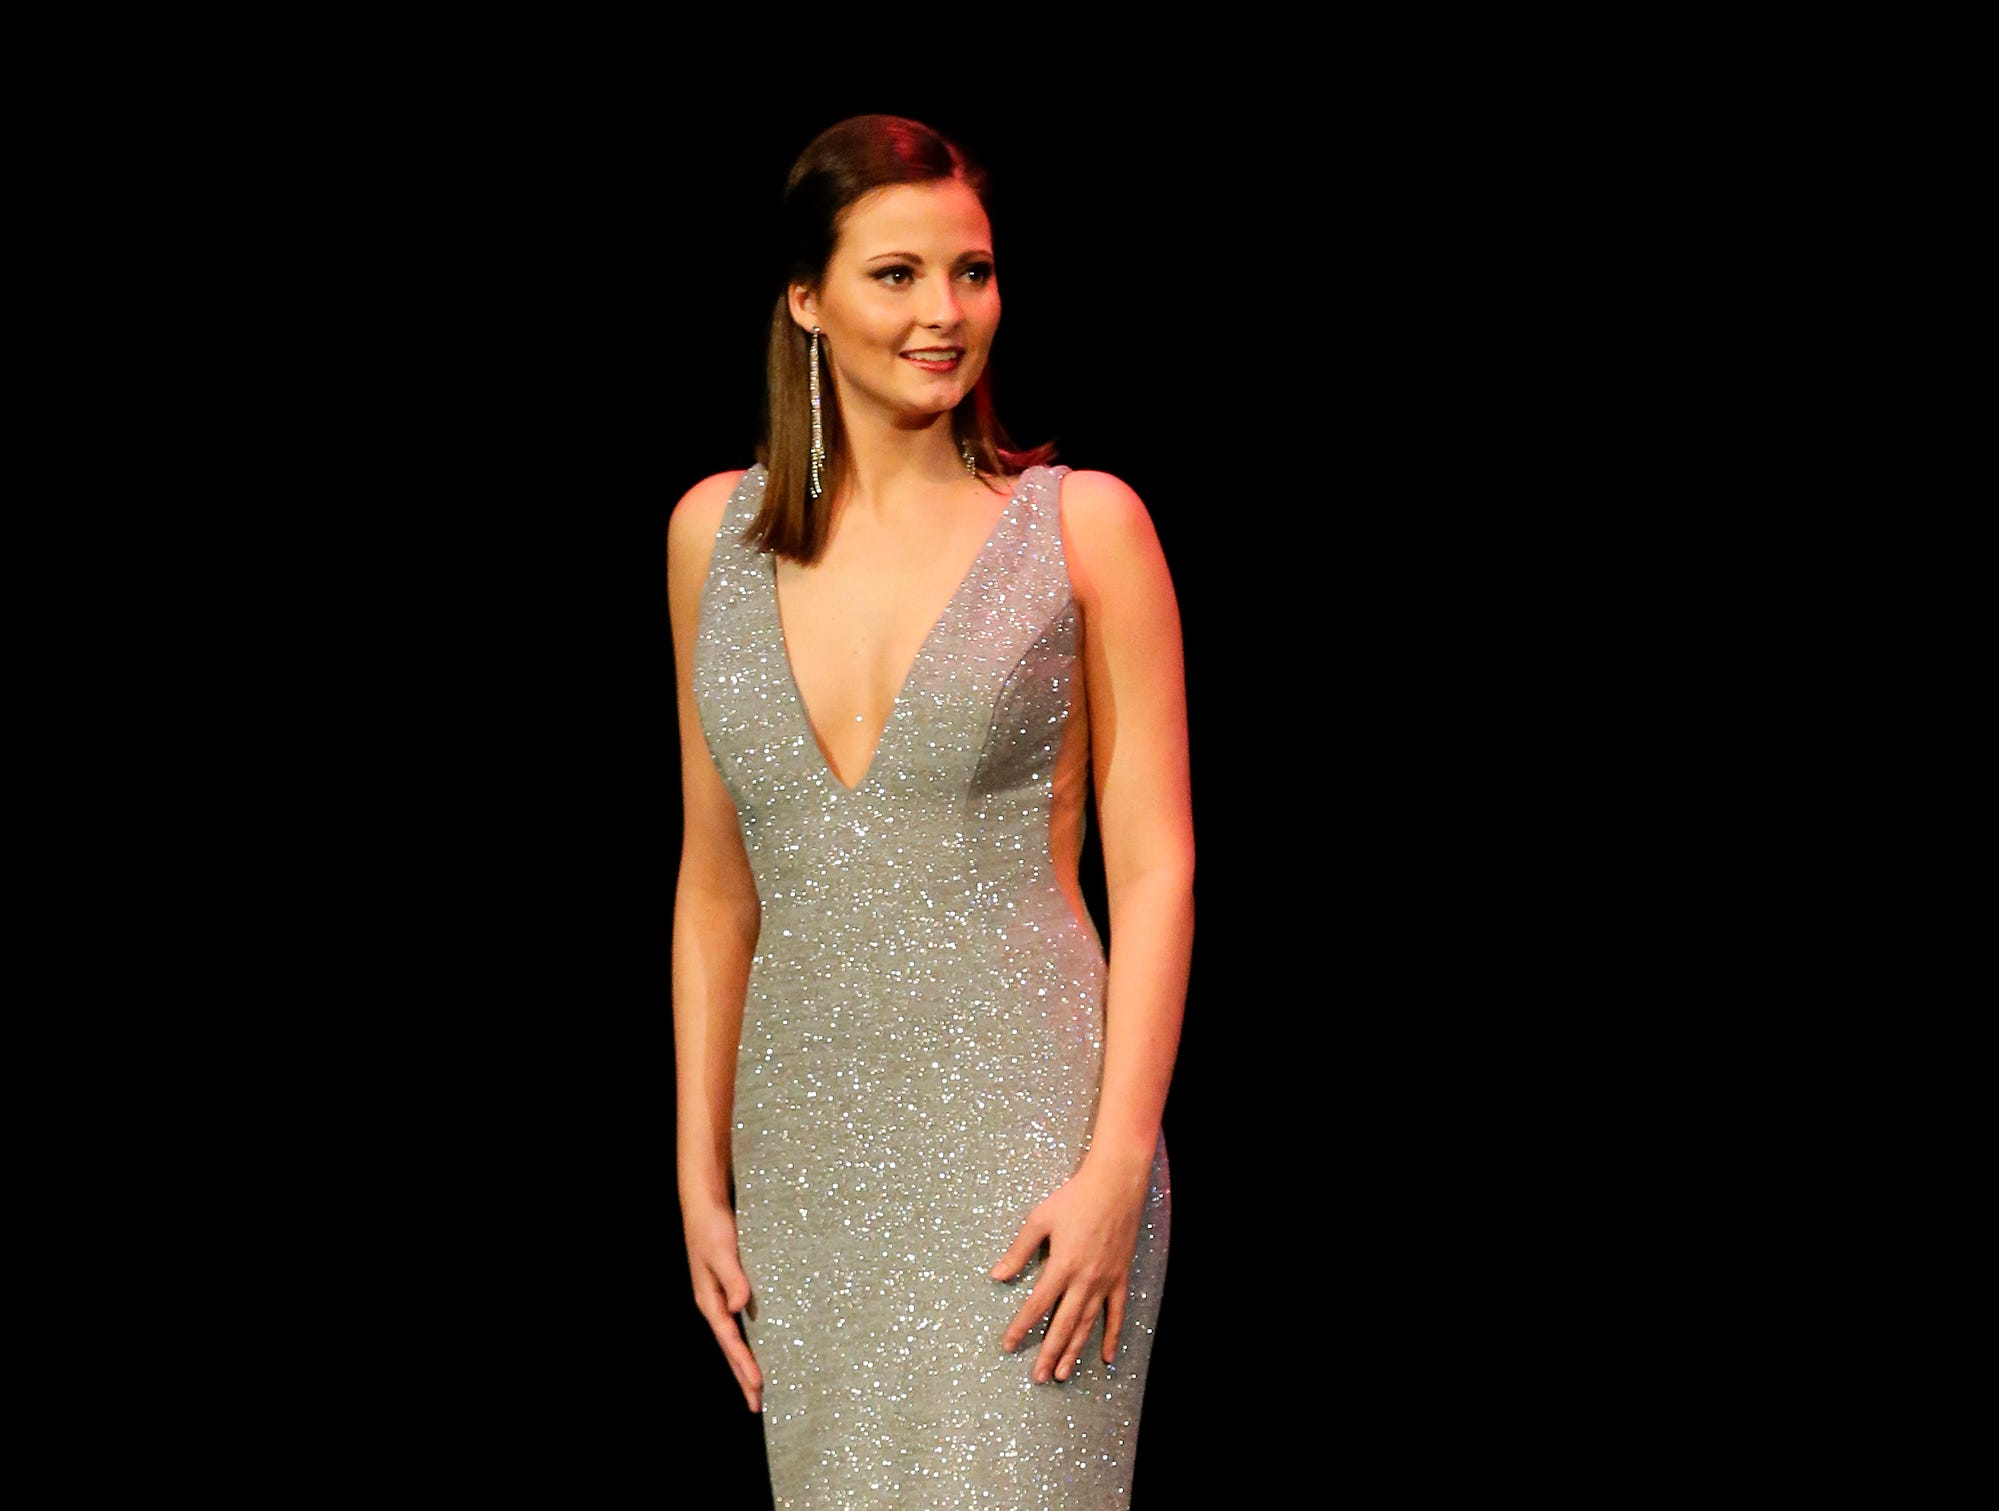 Miss Wisconsin Central contestant Rachel Coulthurst participates in the evening wear portion of the Miss Fond du Lac, Miss Wisconsin Central and Miss Fond du Lac's Outstanding Teen 2019 scholarship competitions Saturday, March 9, 2019 at the Goodrich Little Theater in Fond du Lac, Wis. Doug Raflik/USA TODAY NETWORK-Wisconsin